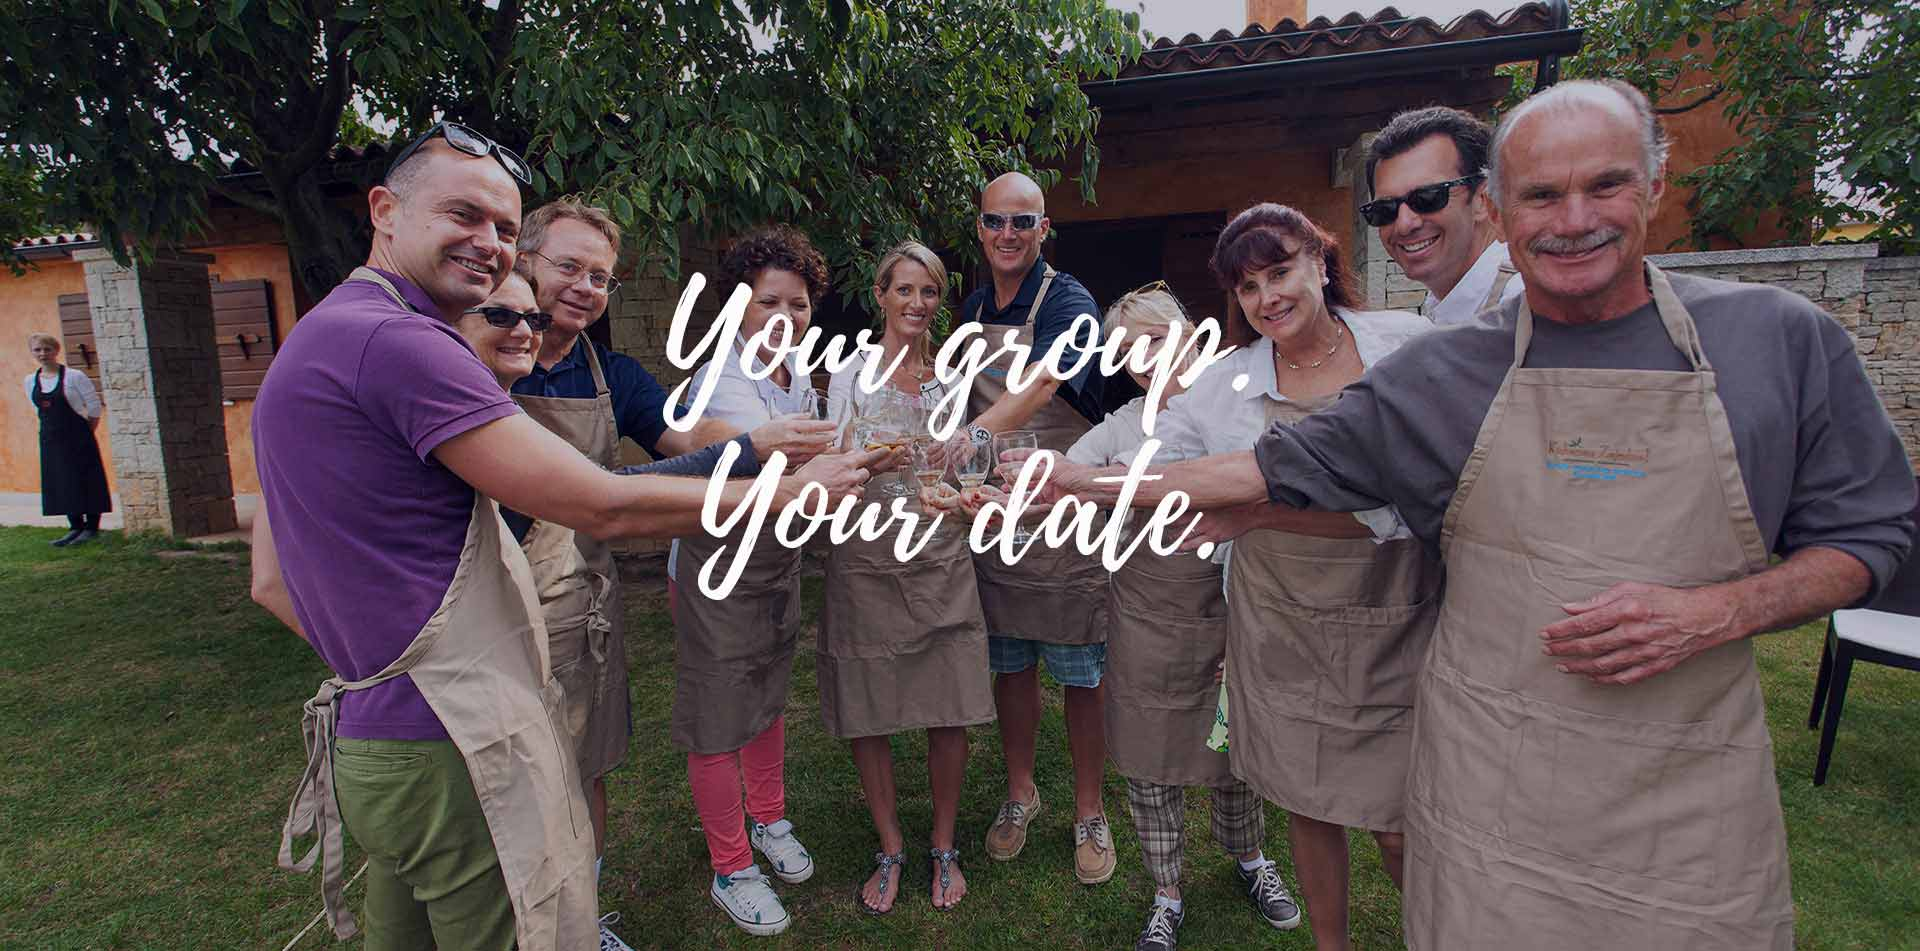 Europe Croatia Istria Vodnjan Chiavalon happy group smiling toasting wine your group your date - luxury vacation destinations